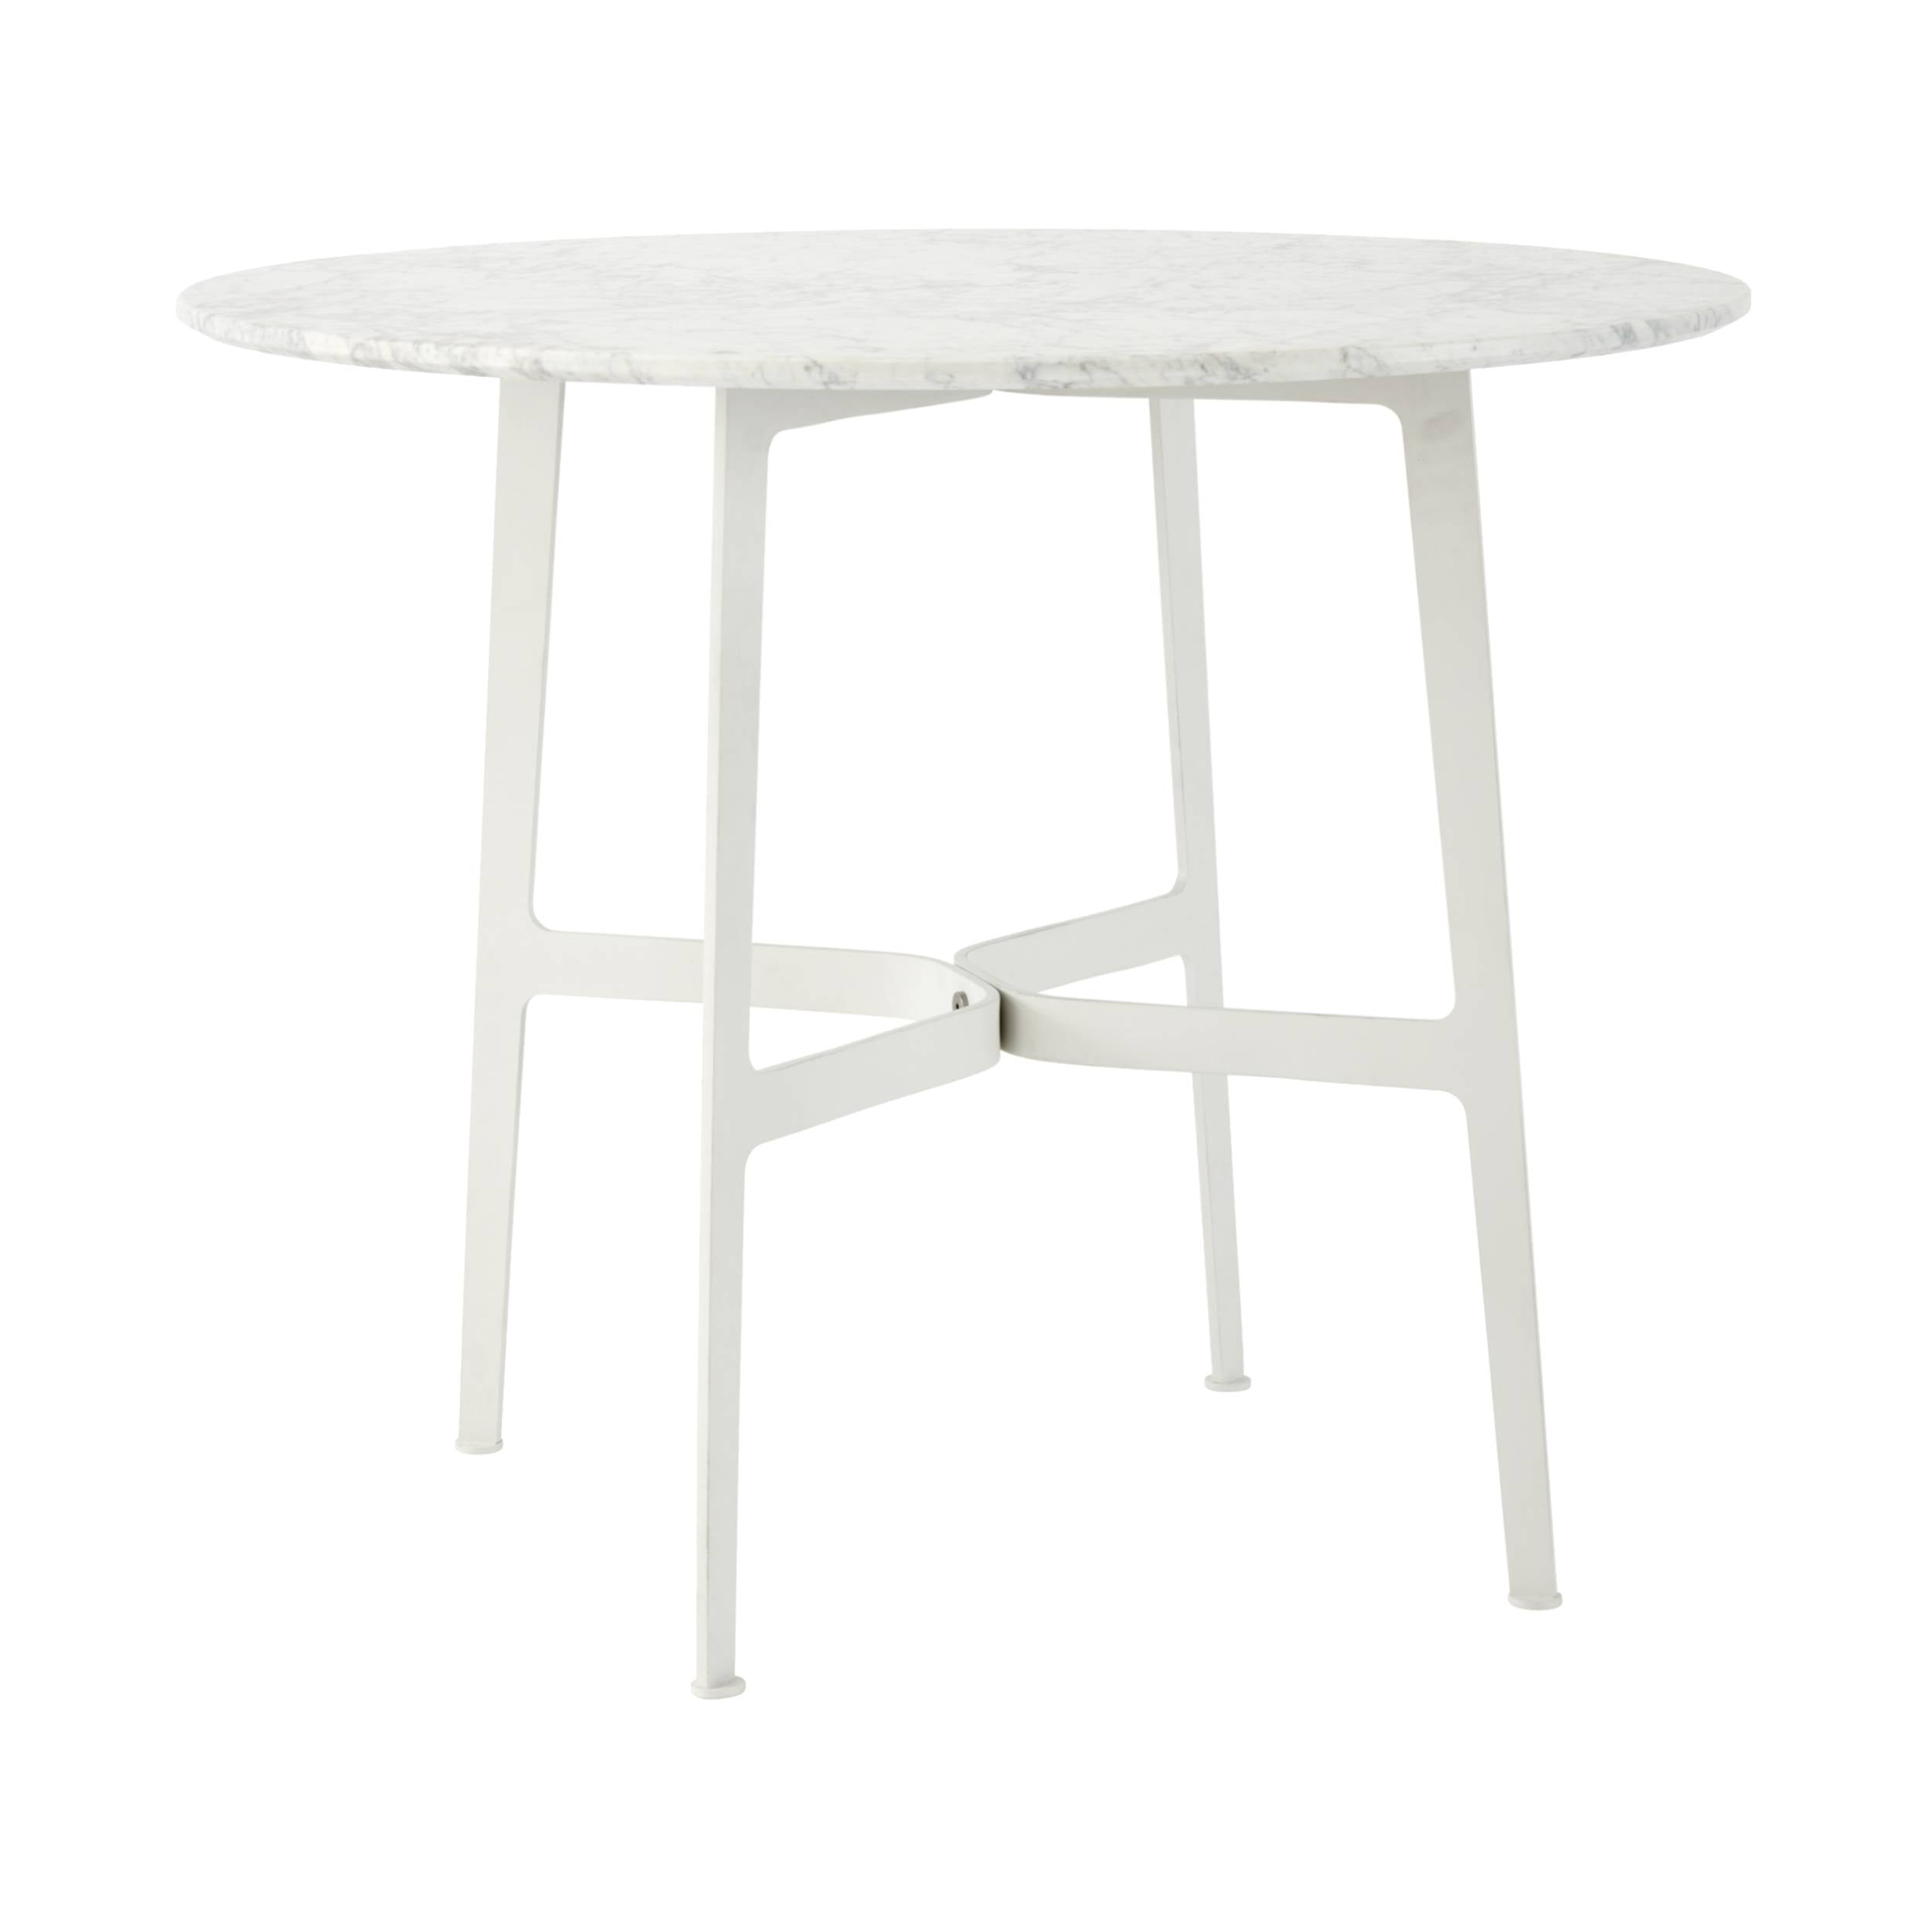 Eileen Circular Dining Table: Small + White + White Marble